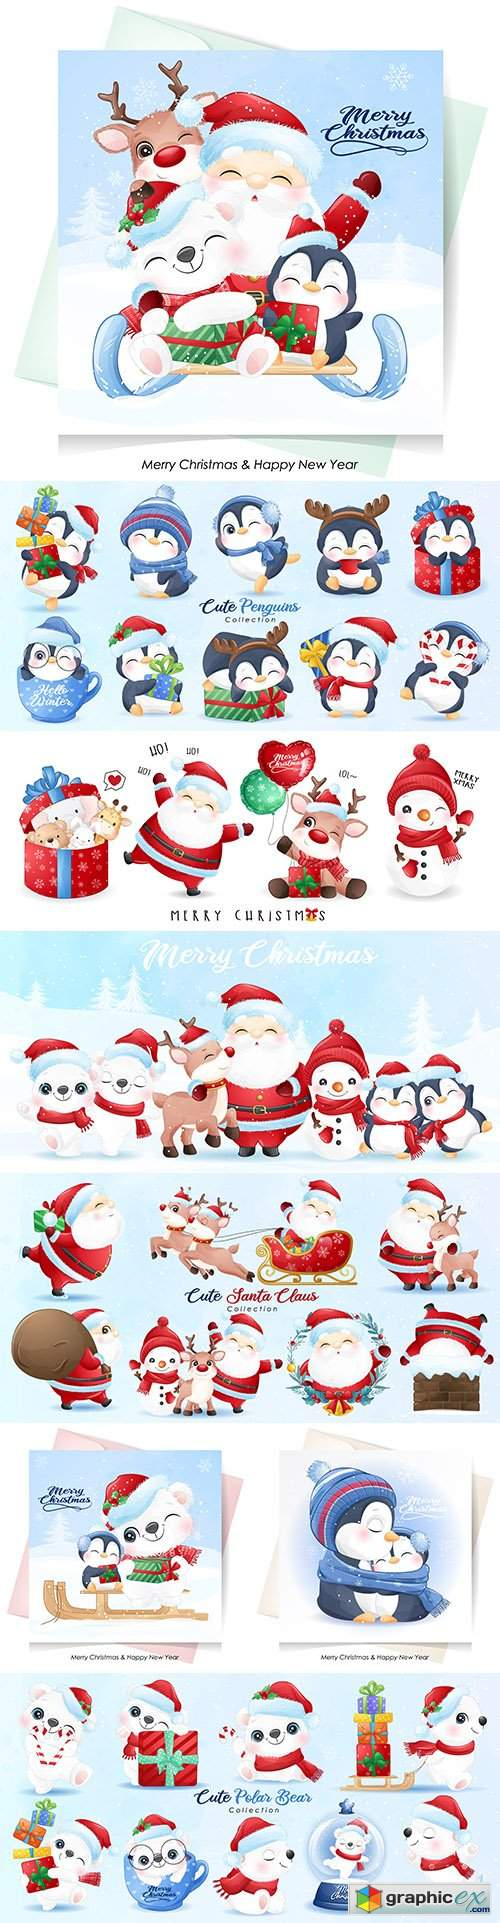 Cute Santa Claus and friends Christmas with watercolor illustration